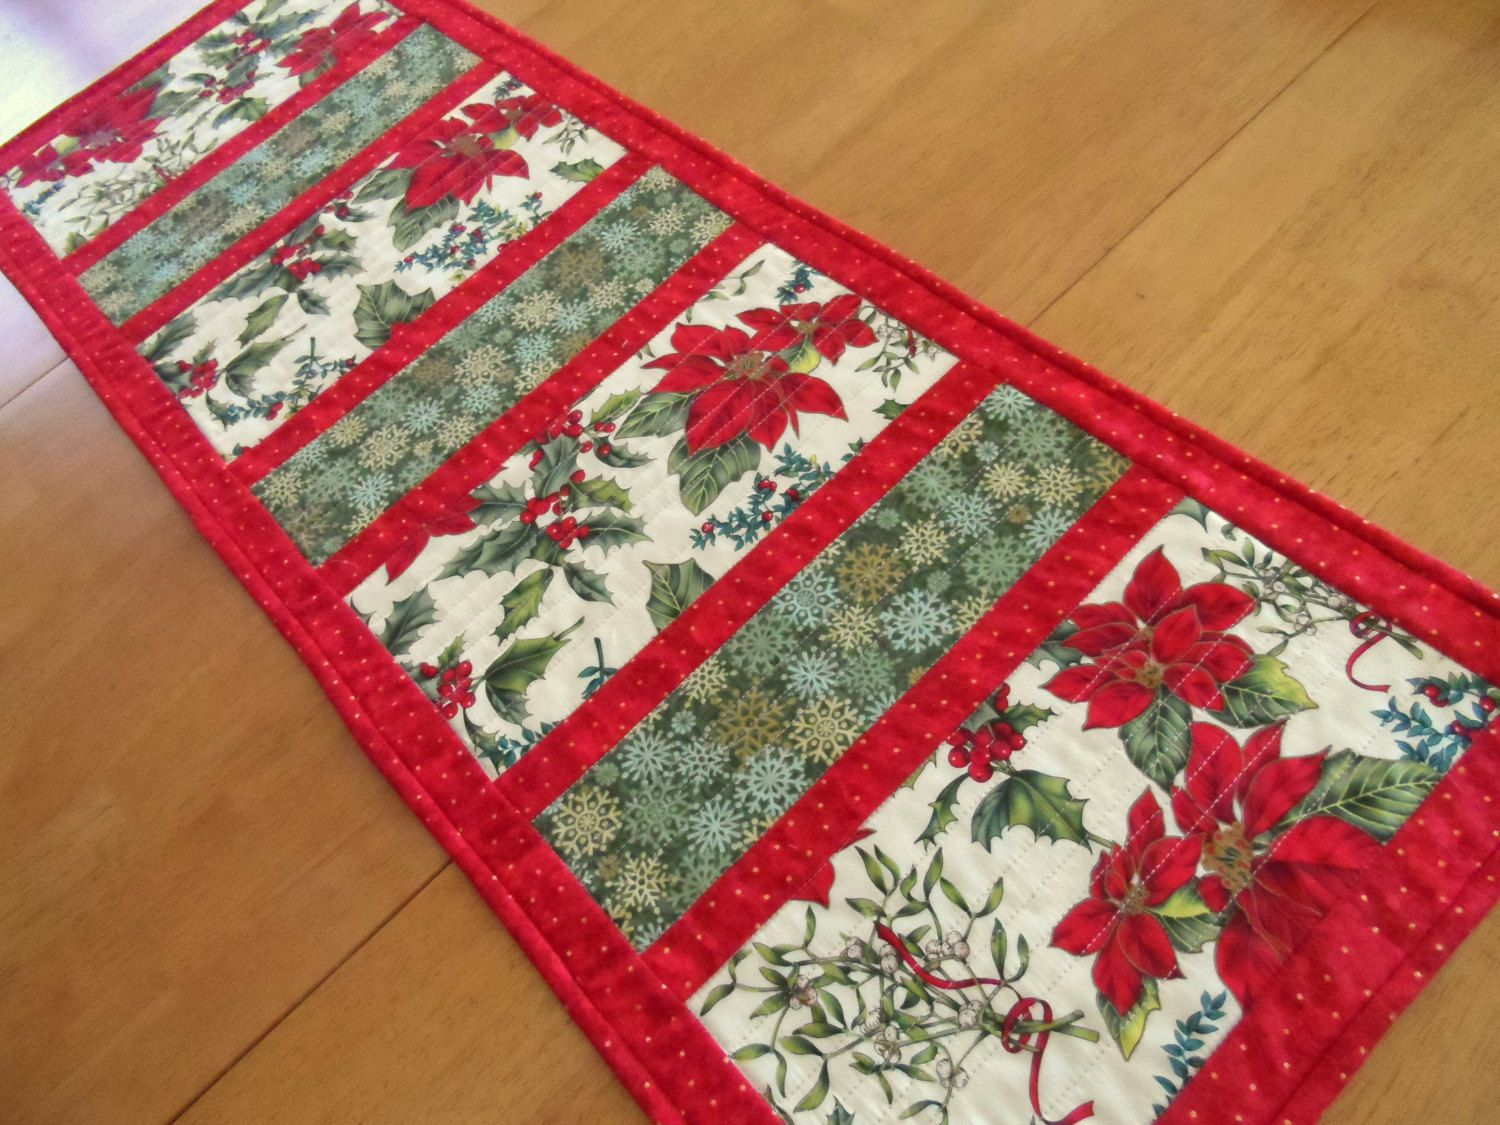 Christmas Table Runner, Modern Holiday Table Runner, Poinsettia, Holly,  Snowflakes, Contemporary